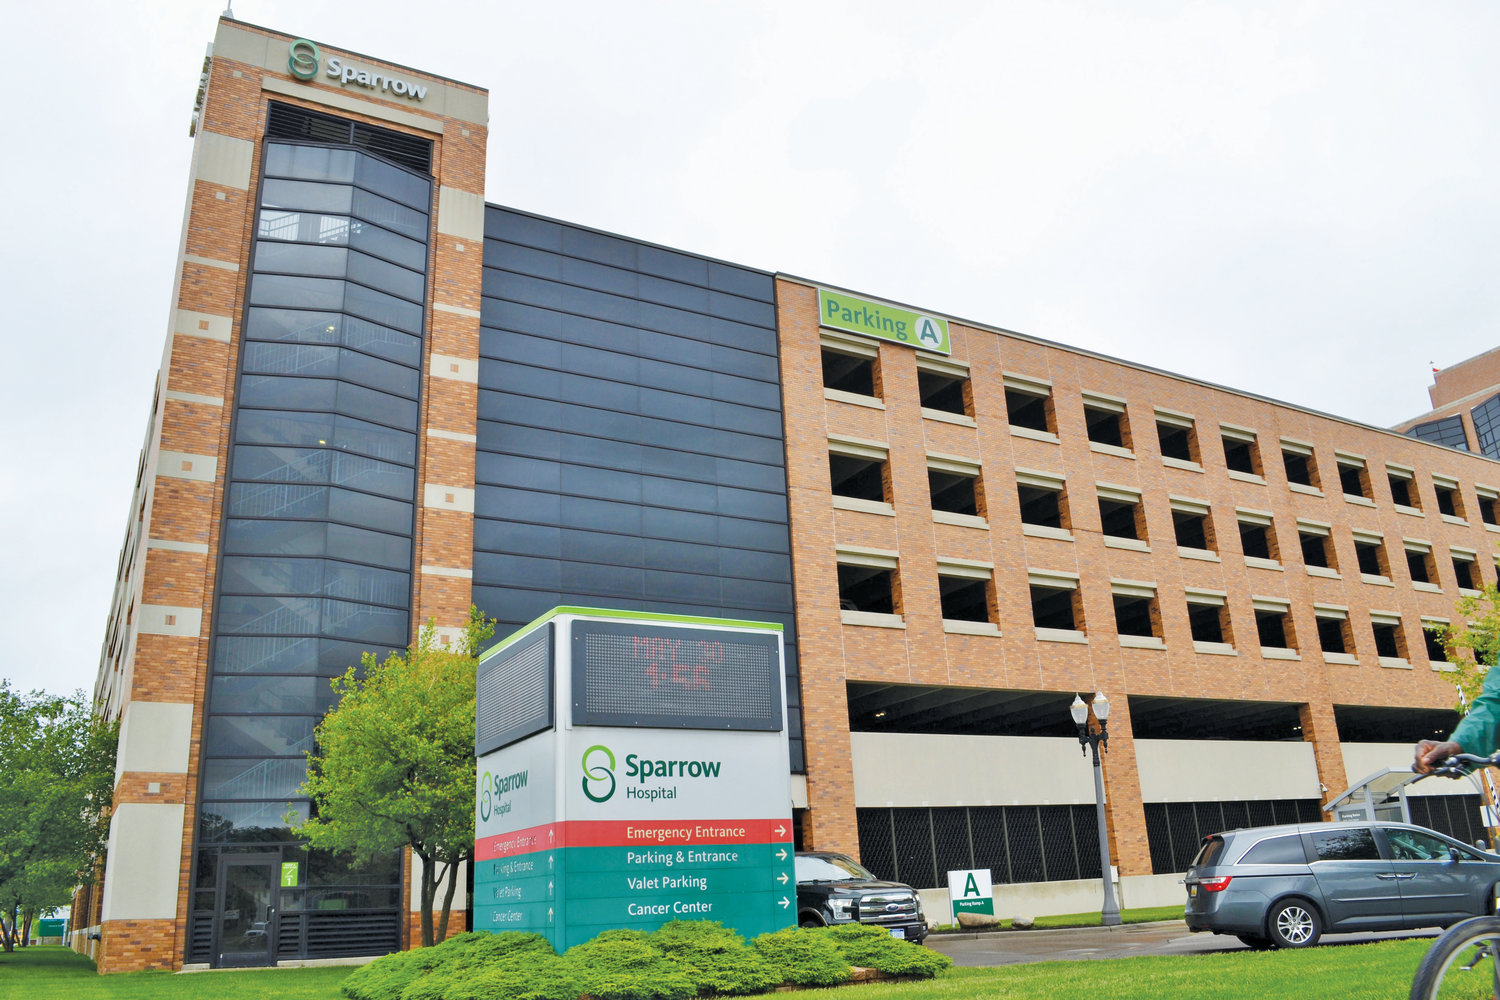 Sparrow Hospital cited for patient safety  City Pulse